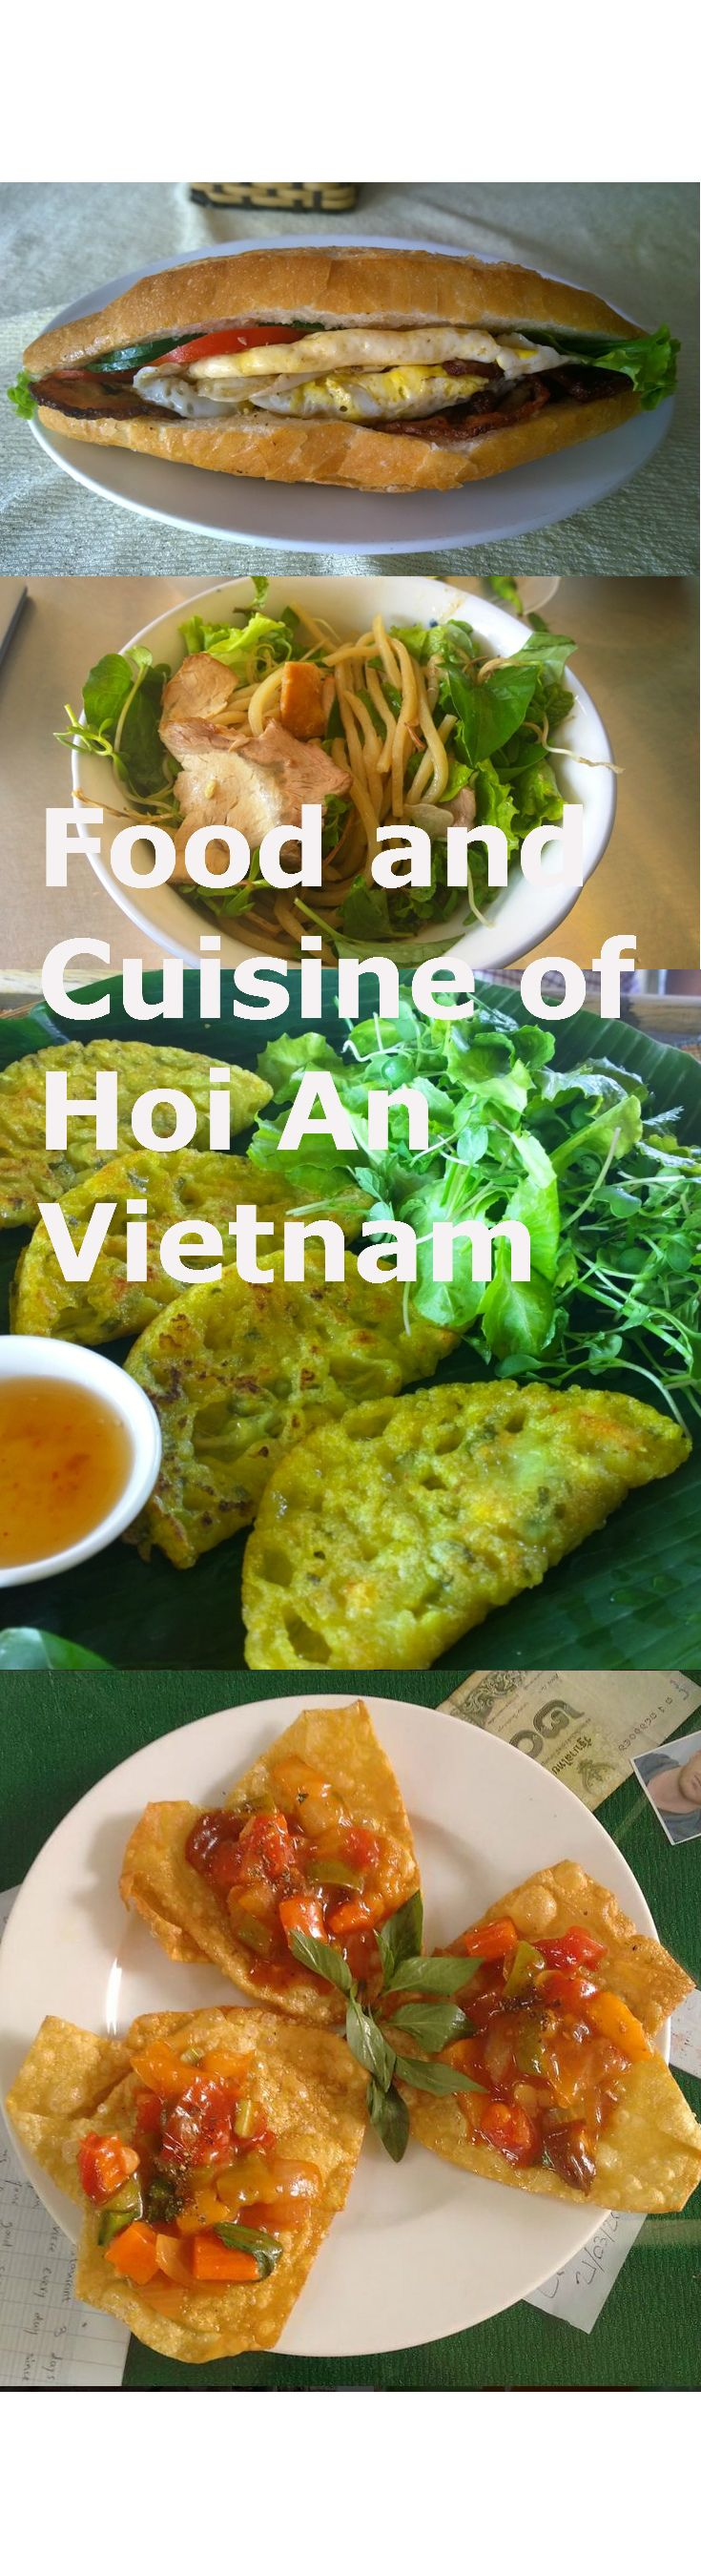 Food and Cuisine of Hoi An Vietnam